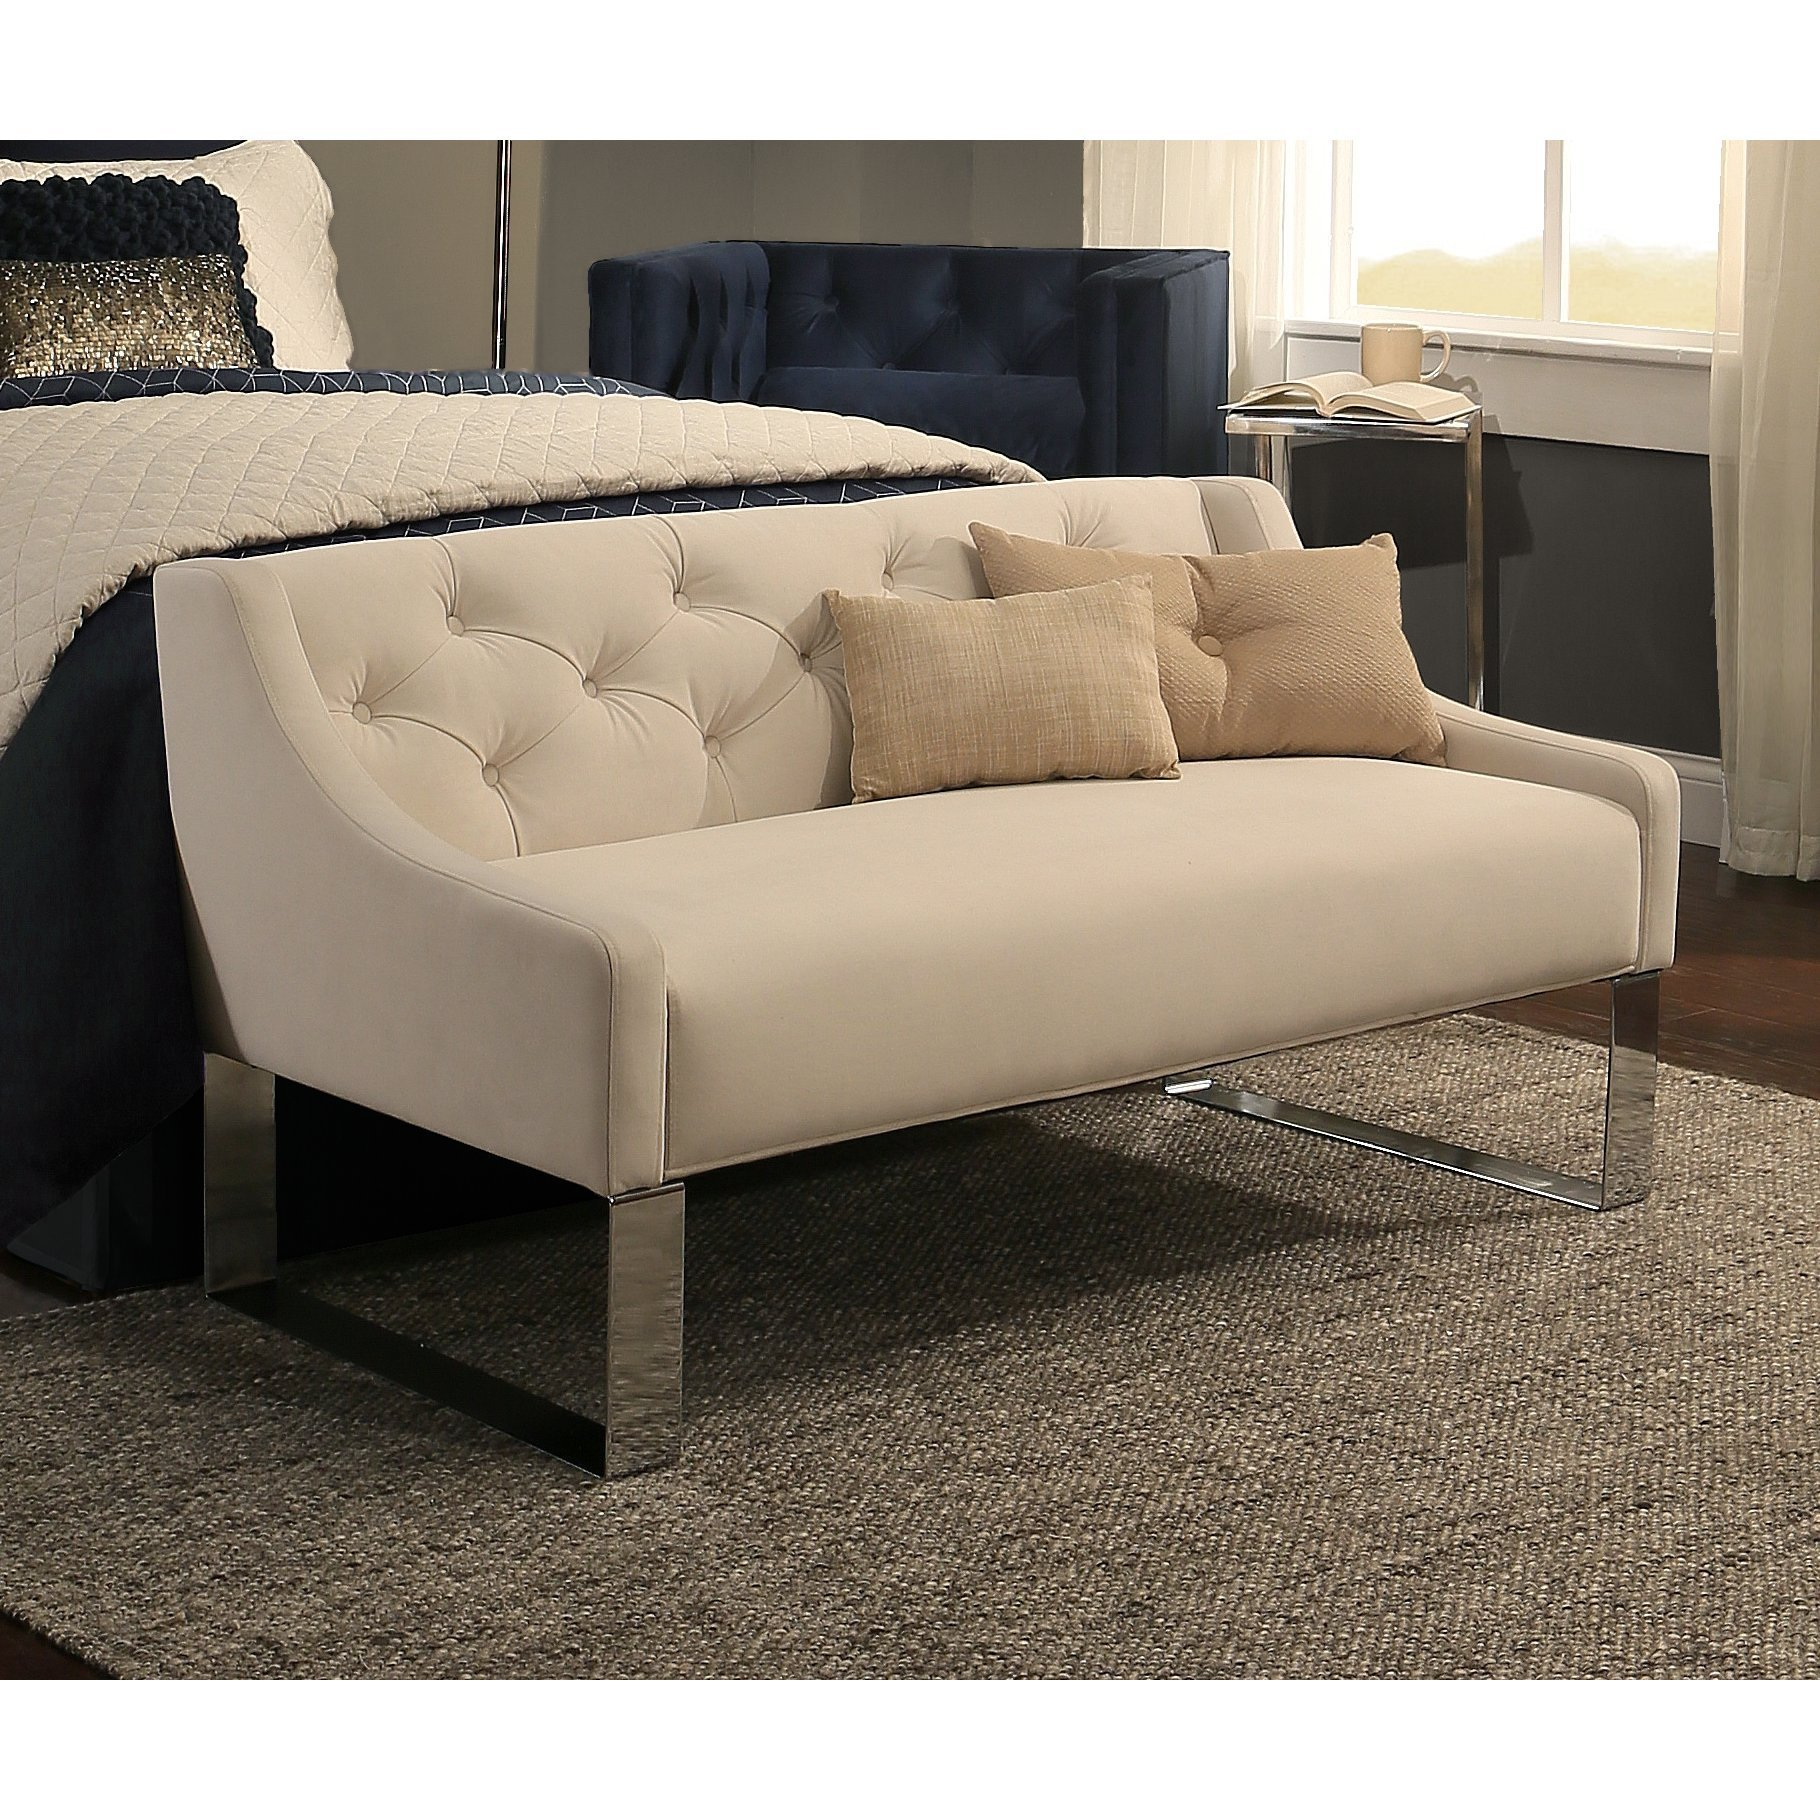 Best Republicdesignhouse Upholstered Bedroom Bench Reviews Wayfair With Pictures